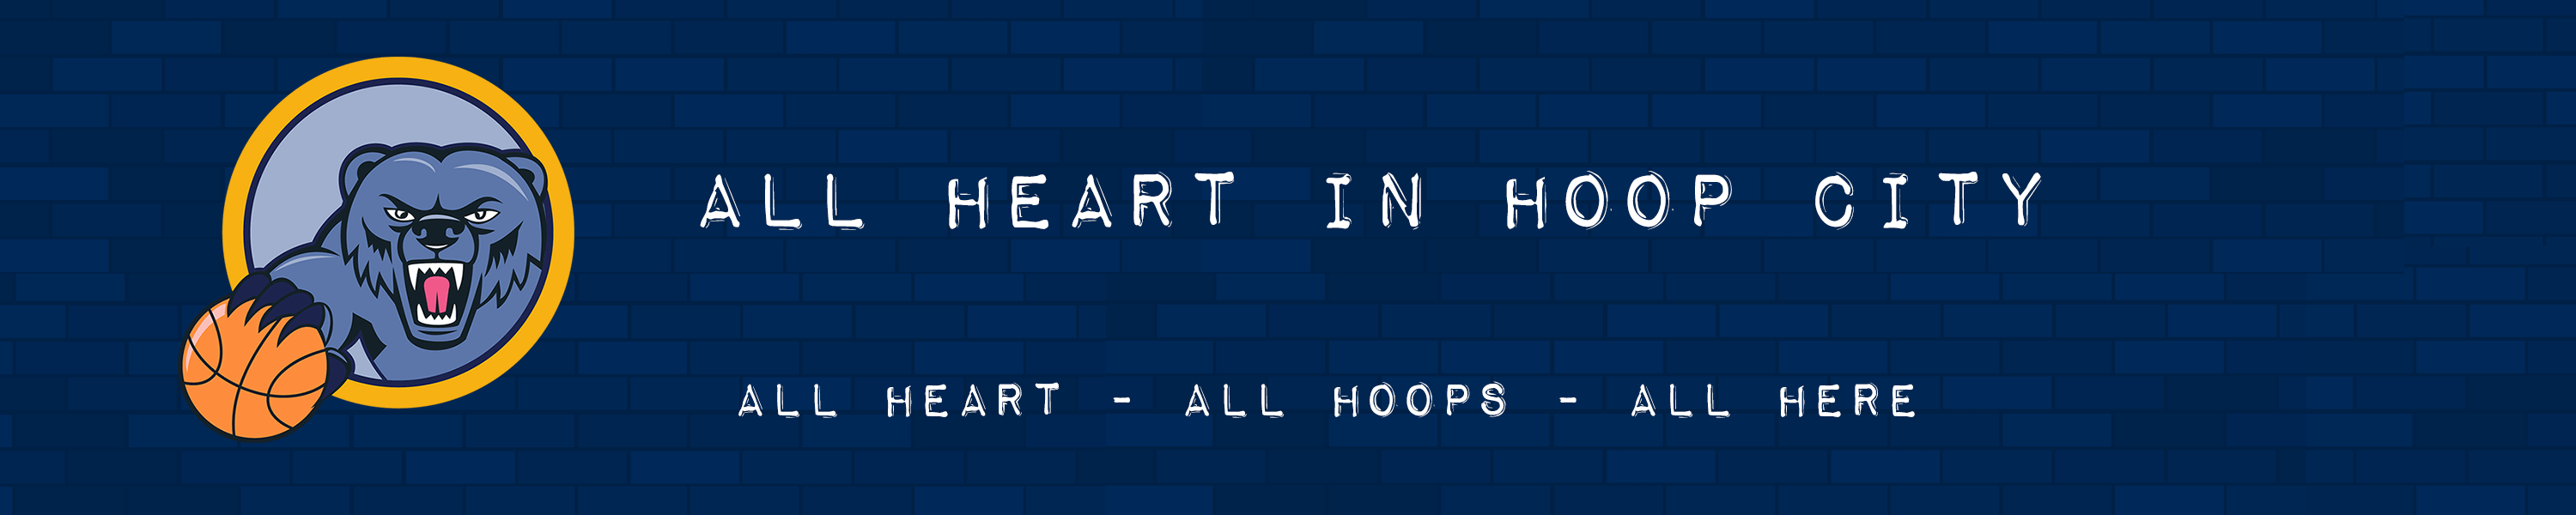 All Heart in Hoop City